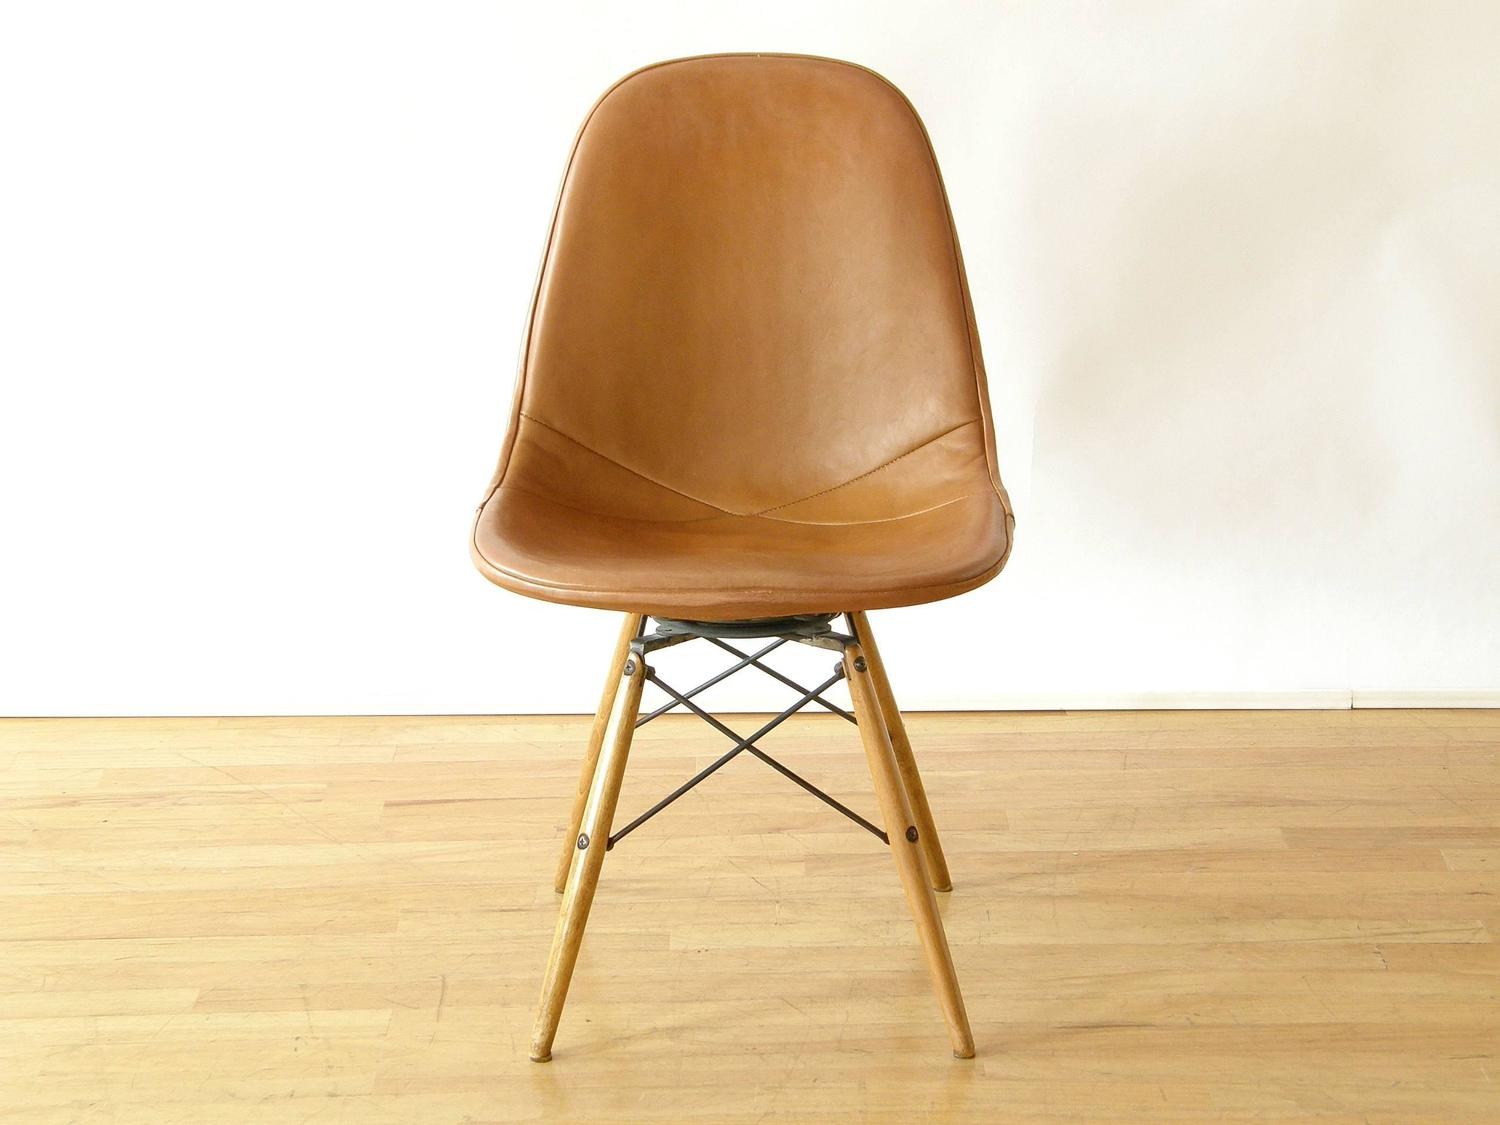 swivel chair wooden legs hanging with cushion eames dowel leg at 1stdibs